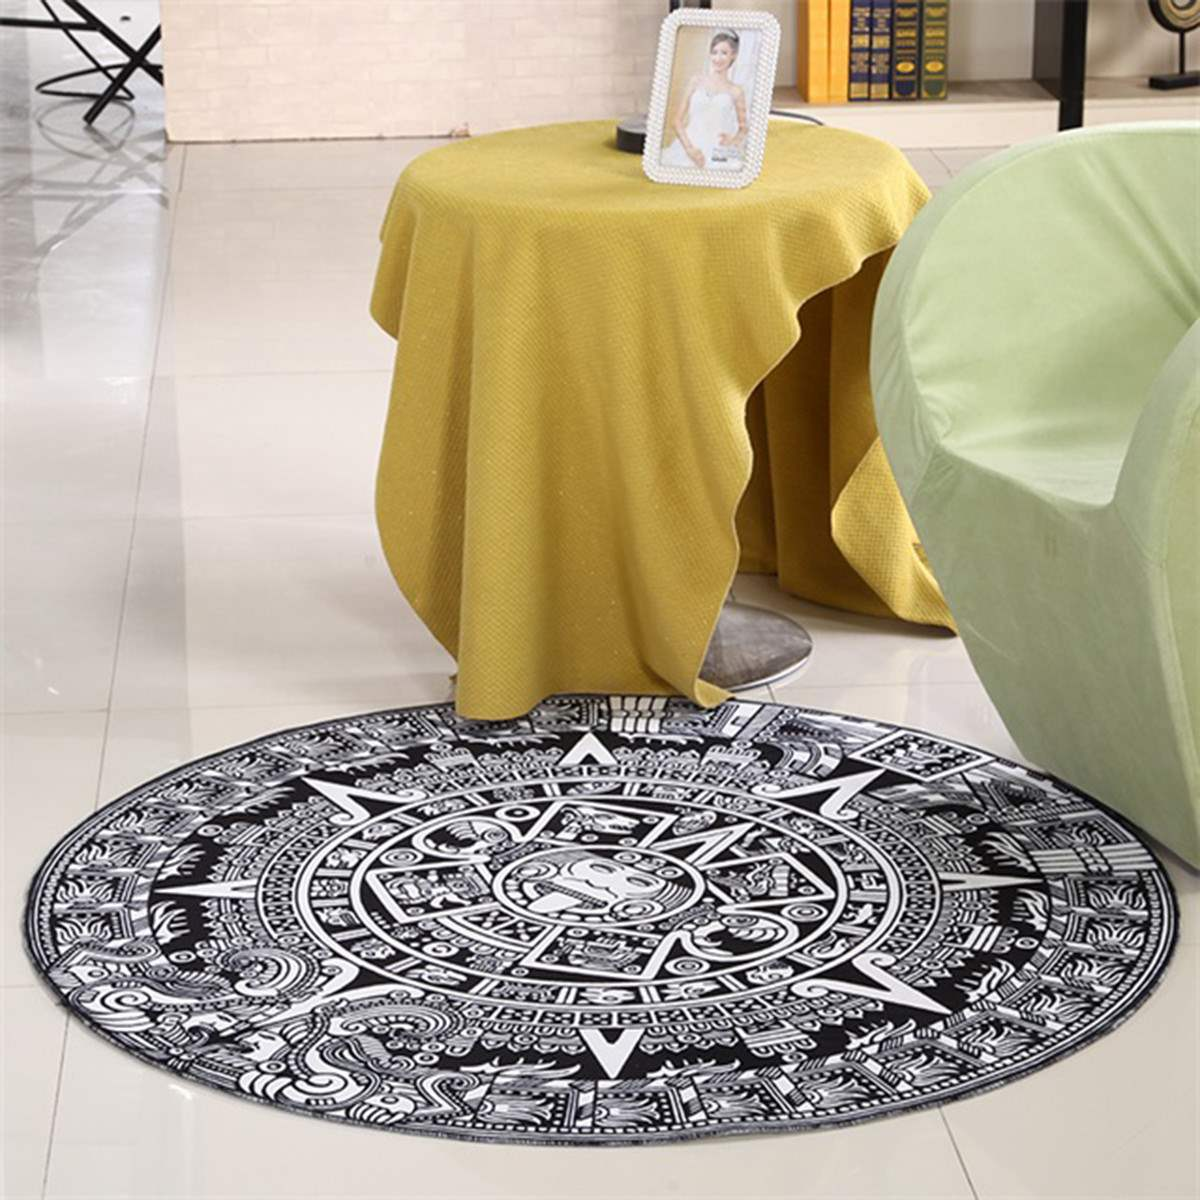 120cm Carpet Gems Fantastic Totem Round Mat Printed Soft Black White Bath  Rugs Kids Doormats For